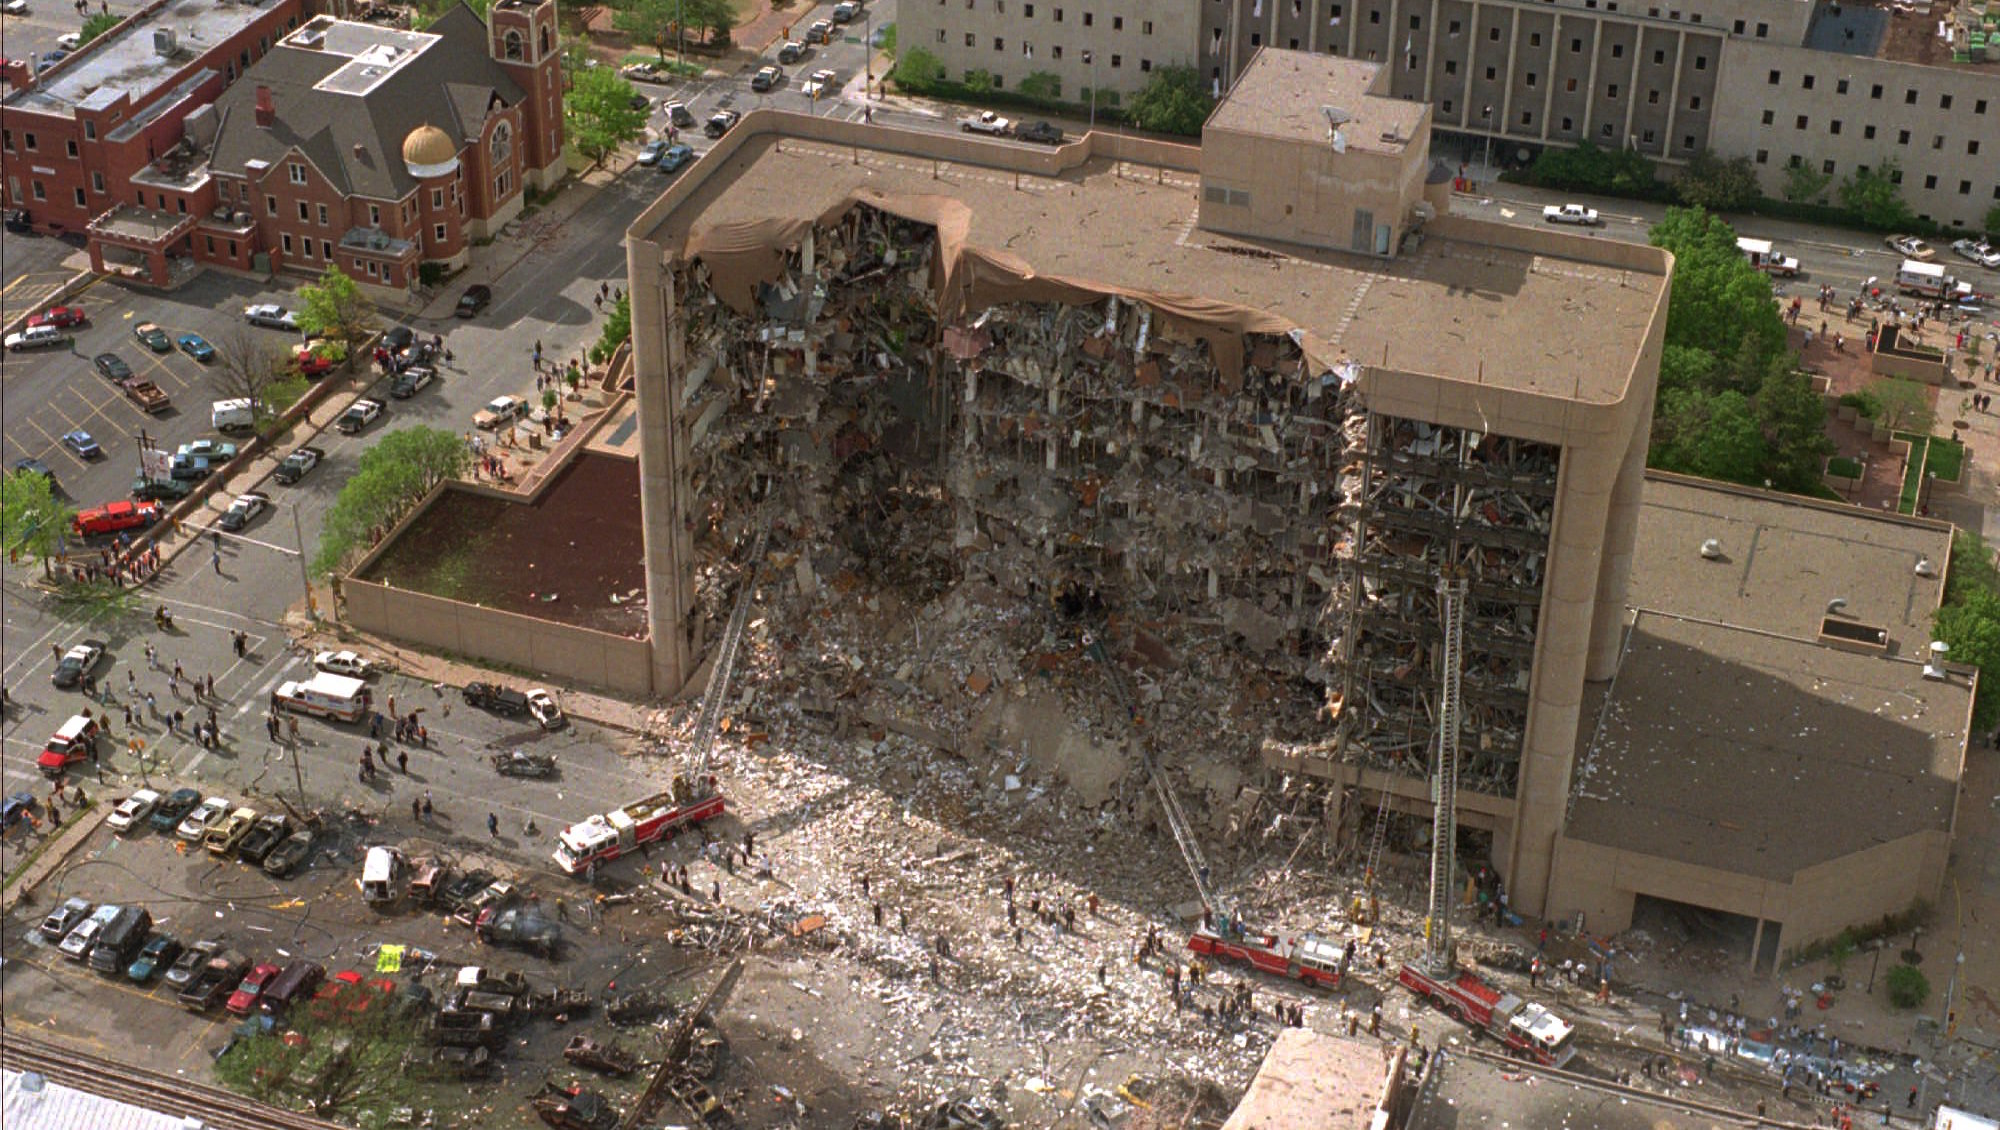 Bombed Murrah Building in Oklahoma City